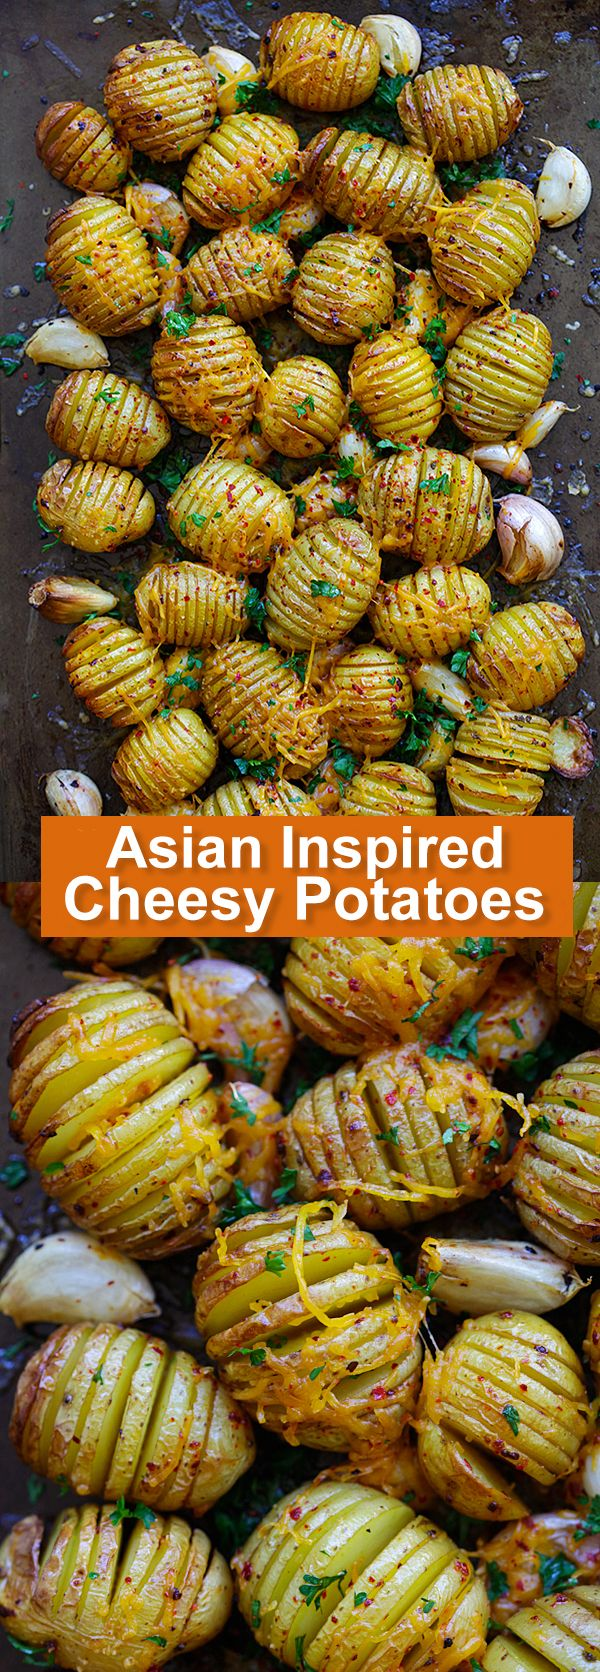 Asian Inspired Cheesy Potatoes - Hasselback potatoes like you've never tasted before, infused with a kick of Asian flavor. #realfoodsunday @tillamook #ad